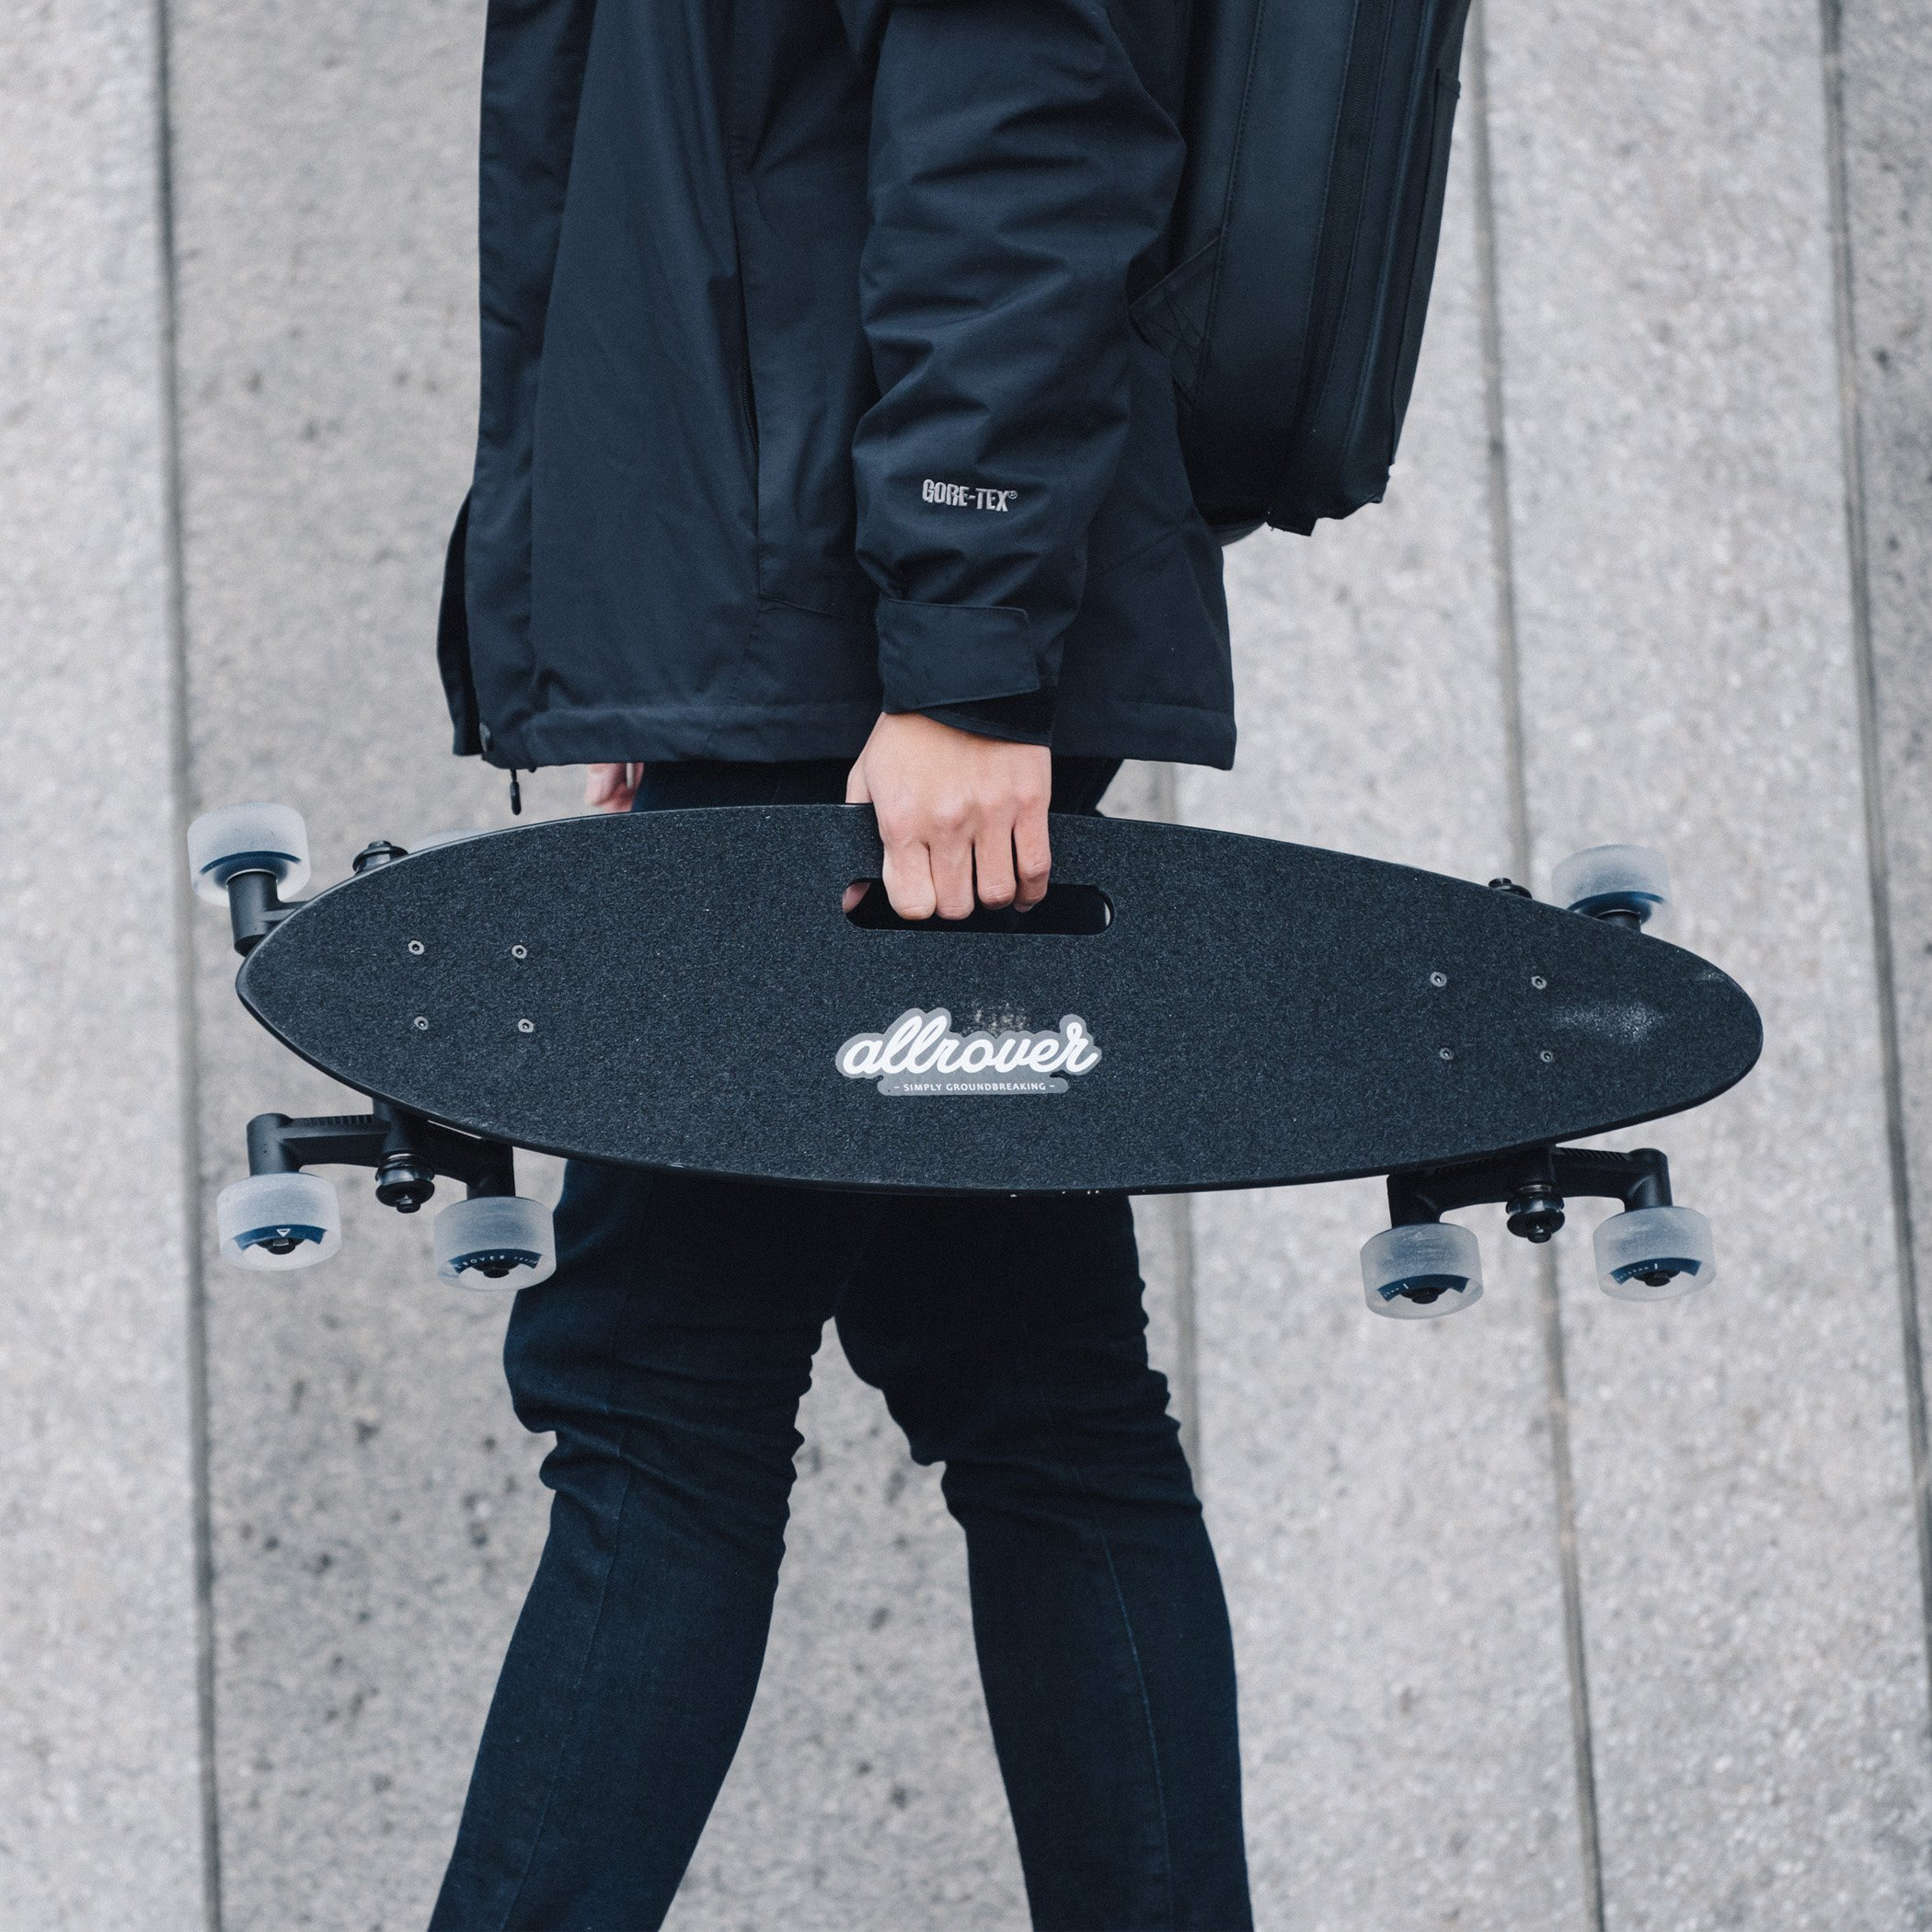 22d18eca2f63 Stair-Rover by Allrover  Surf the city with an all urban terrain longboard   Amazon.co.uk  Sports   Outdoors